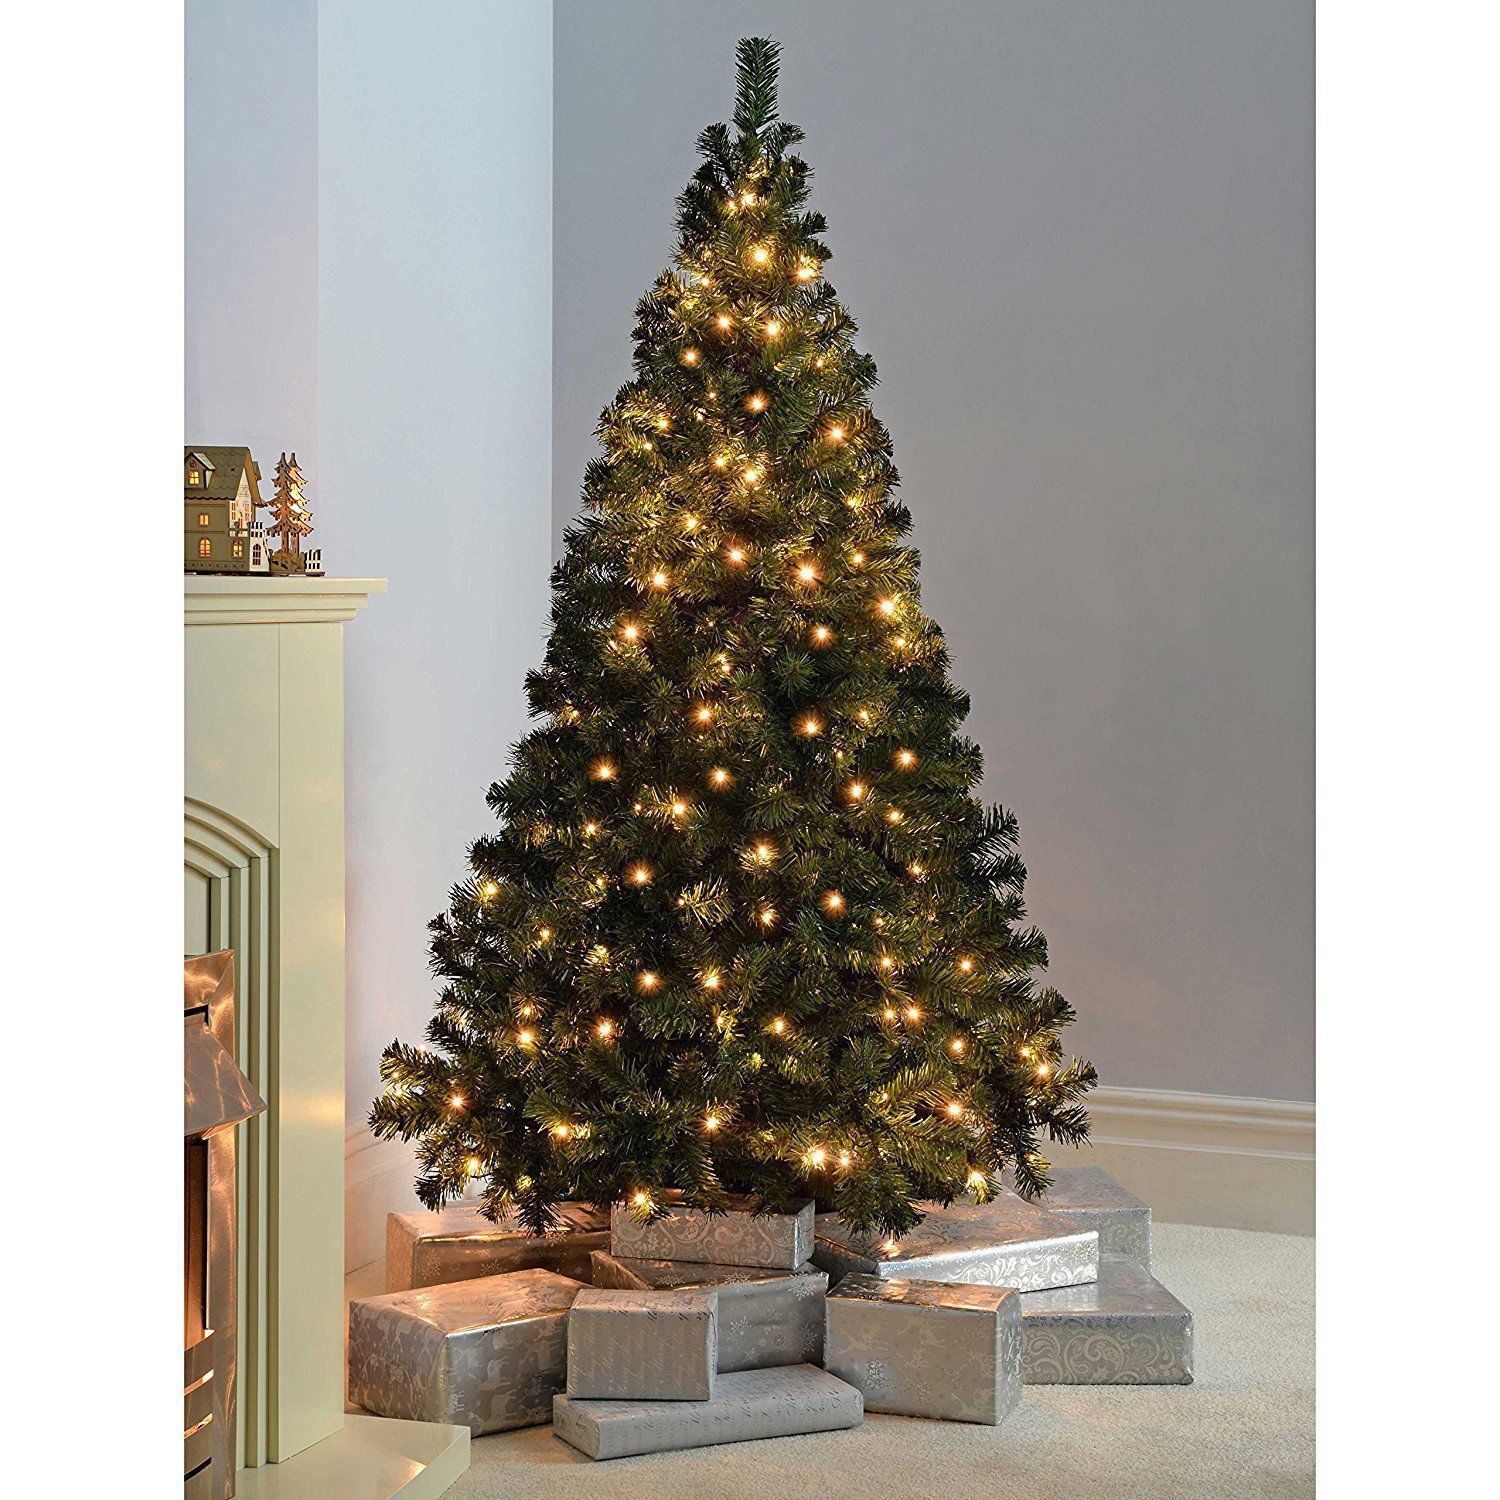 Pre Lit Led Lights Christmas Tree: 7ft 400 LED Artificial Christmas Tree Warm White Pre-Lit